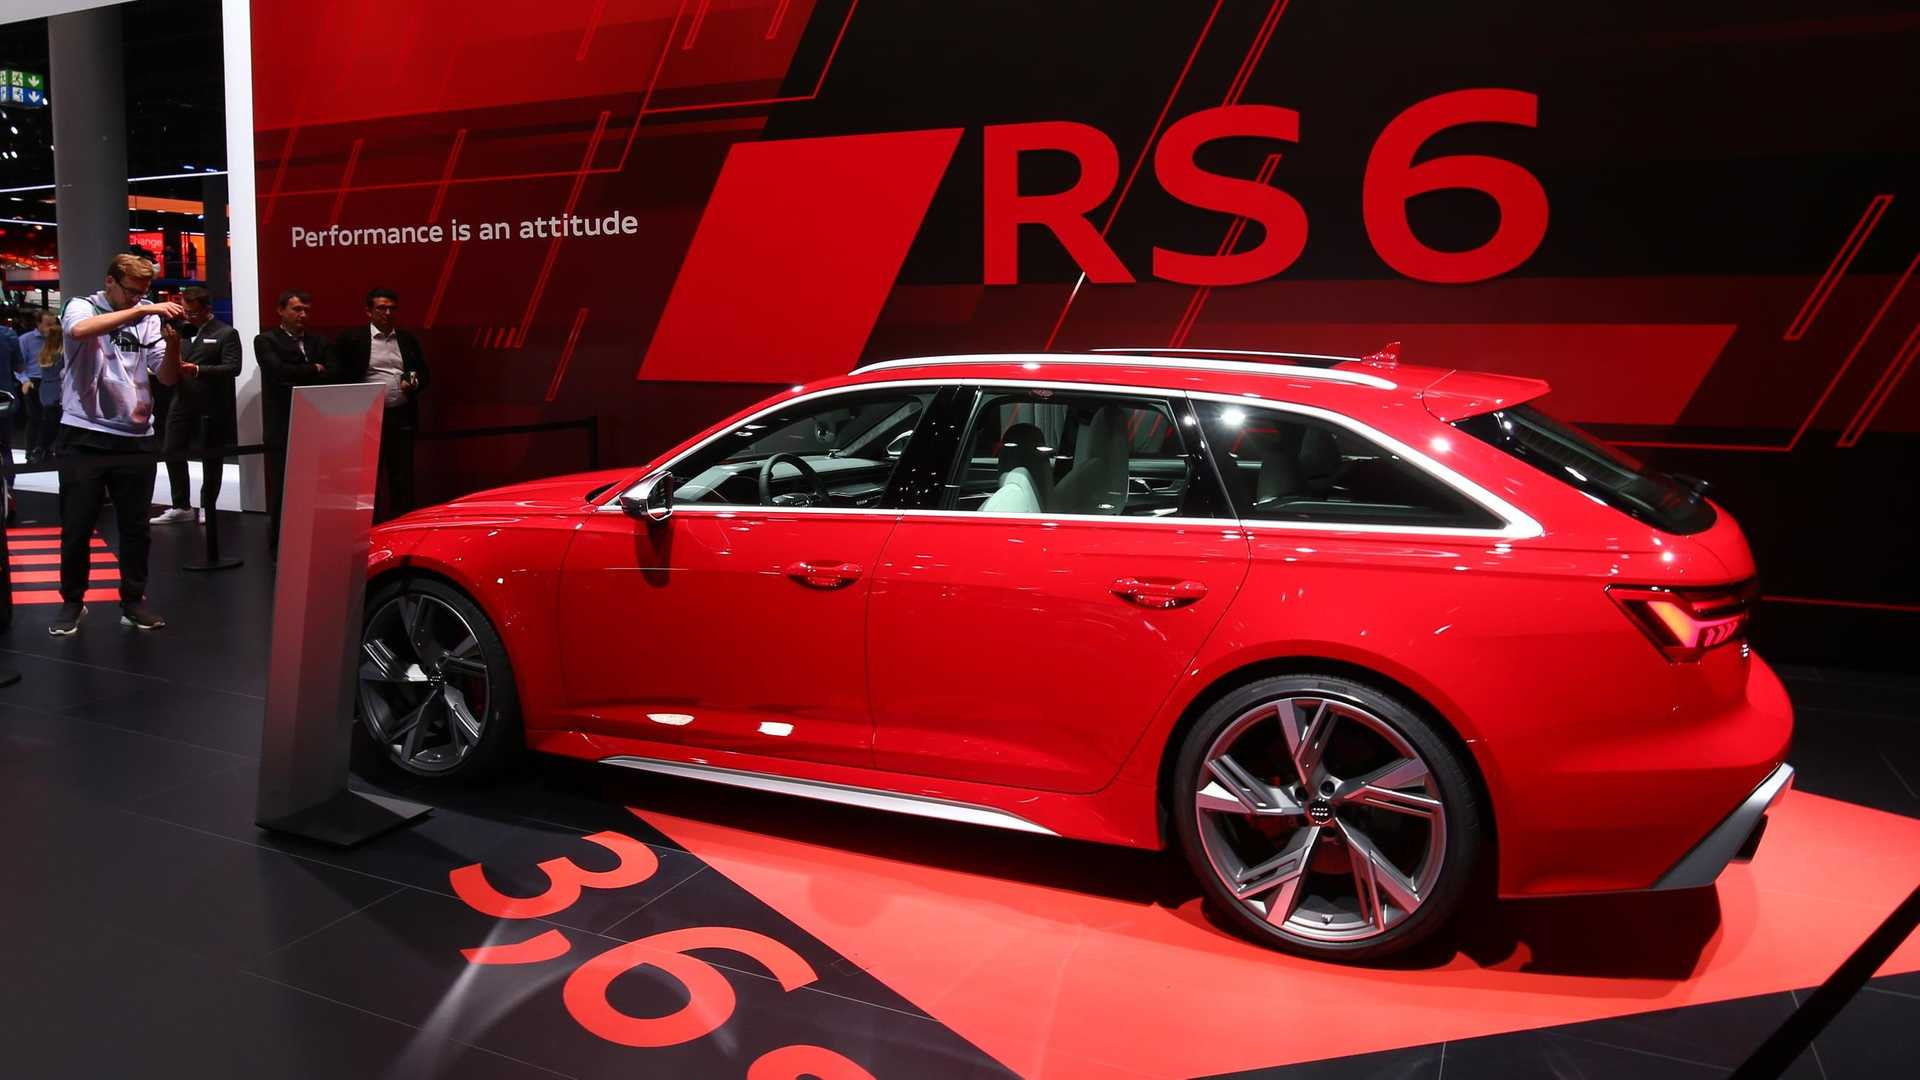 Frankfurt Auto Show 2020.Audi Hints At Hotter Rs6 Rs7 Hybrids With More Power